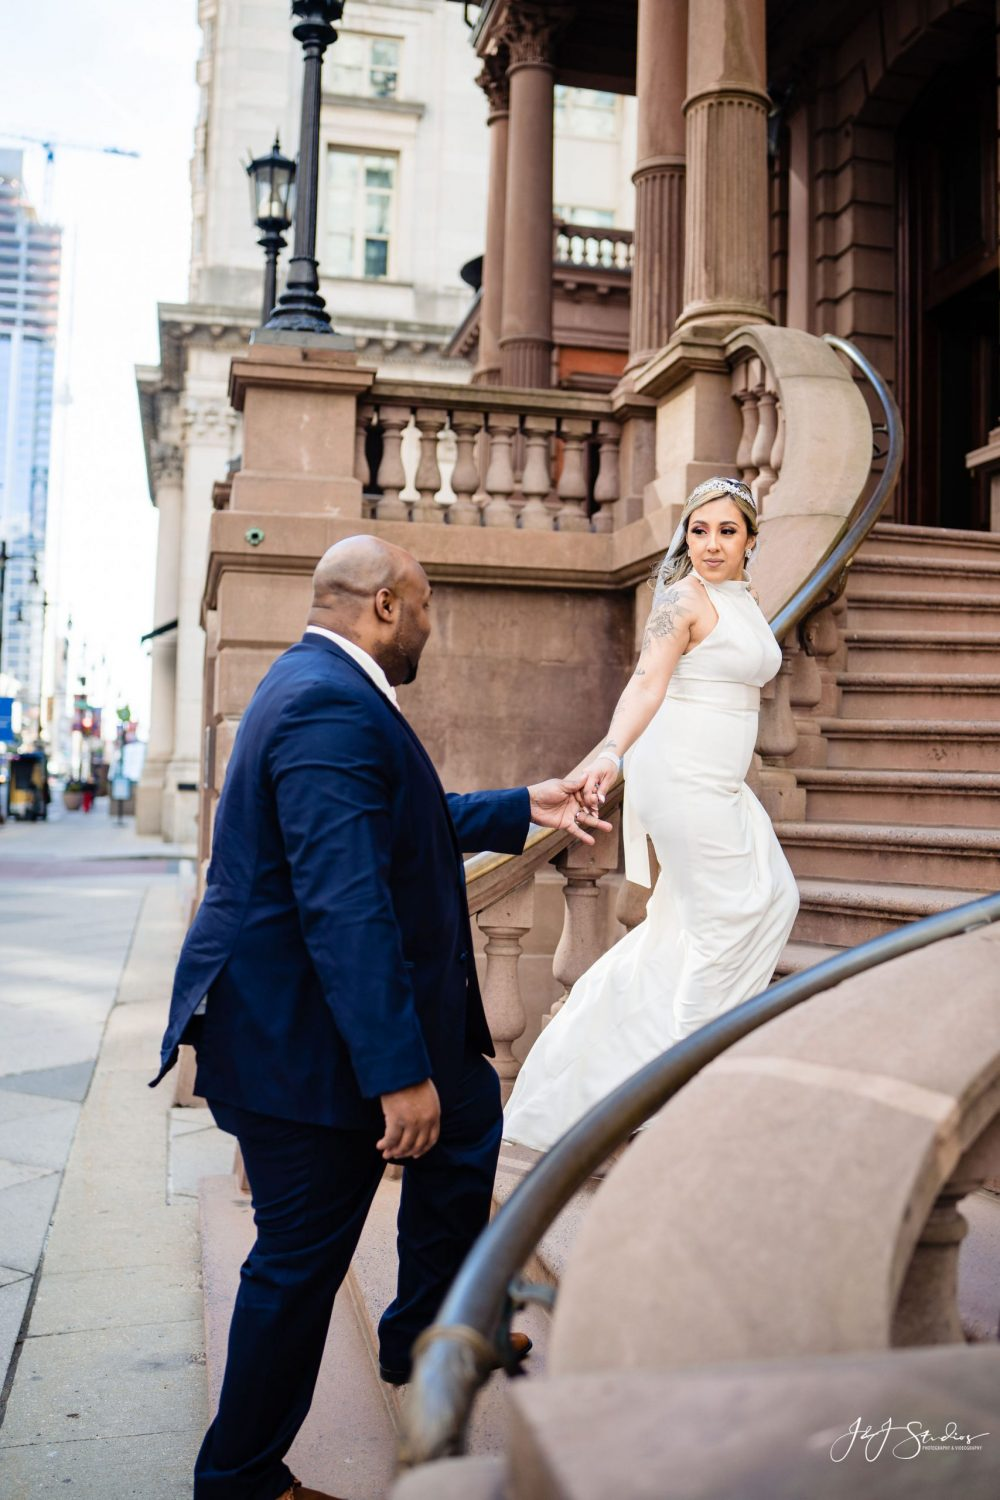 Newly married couple Center City Philadelphia